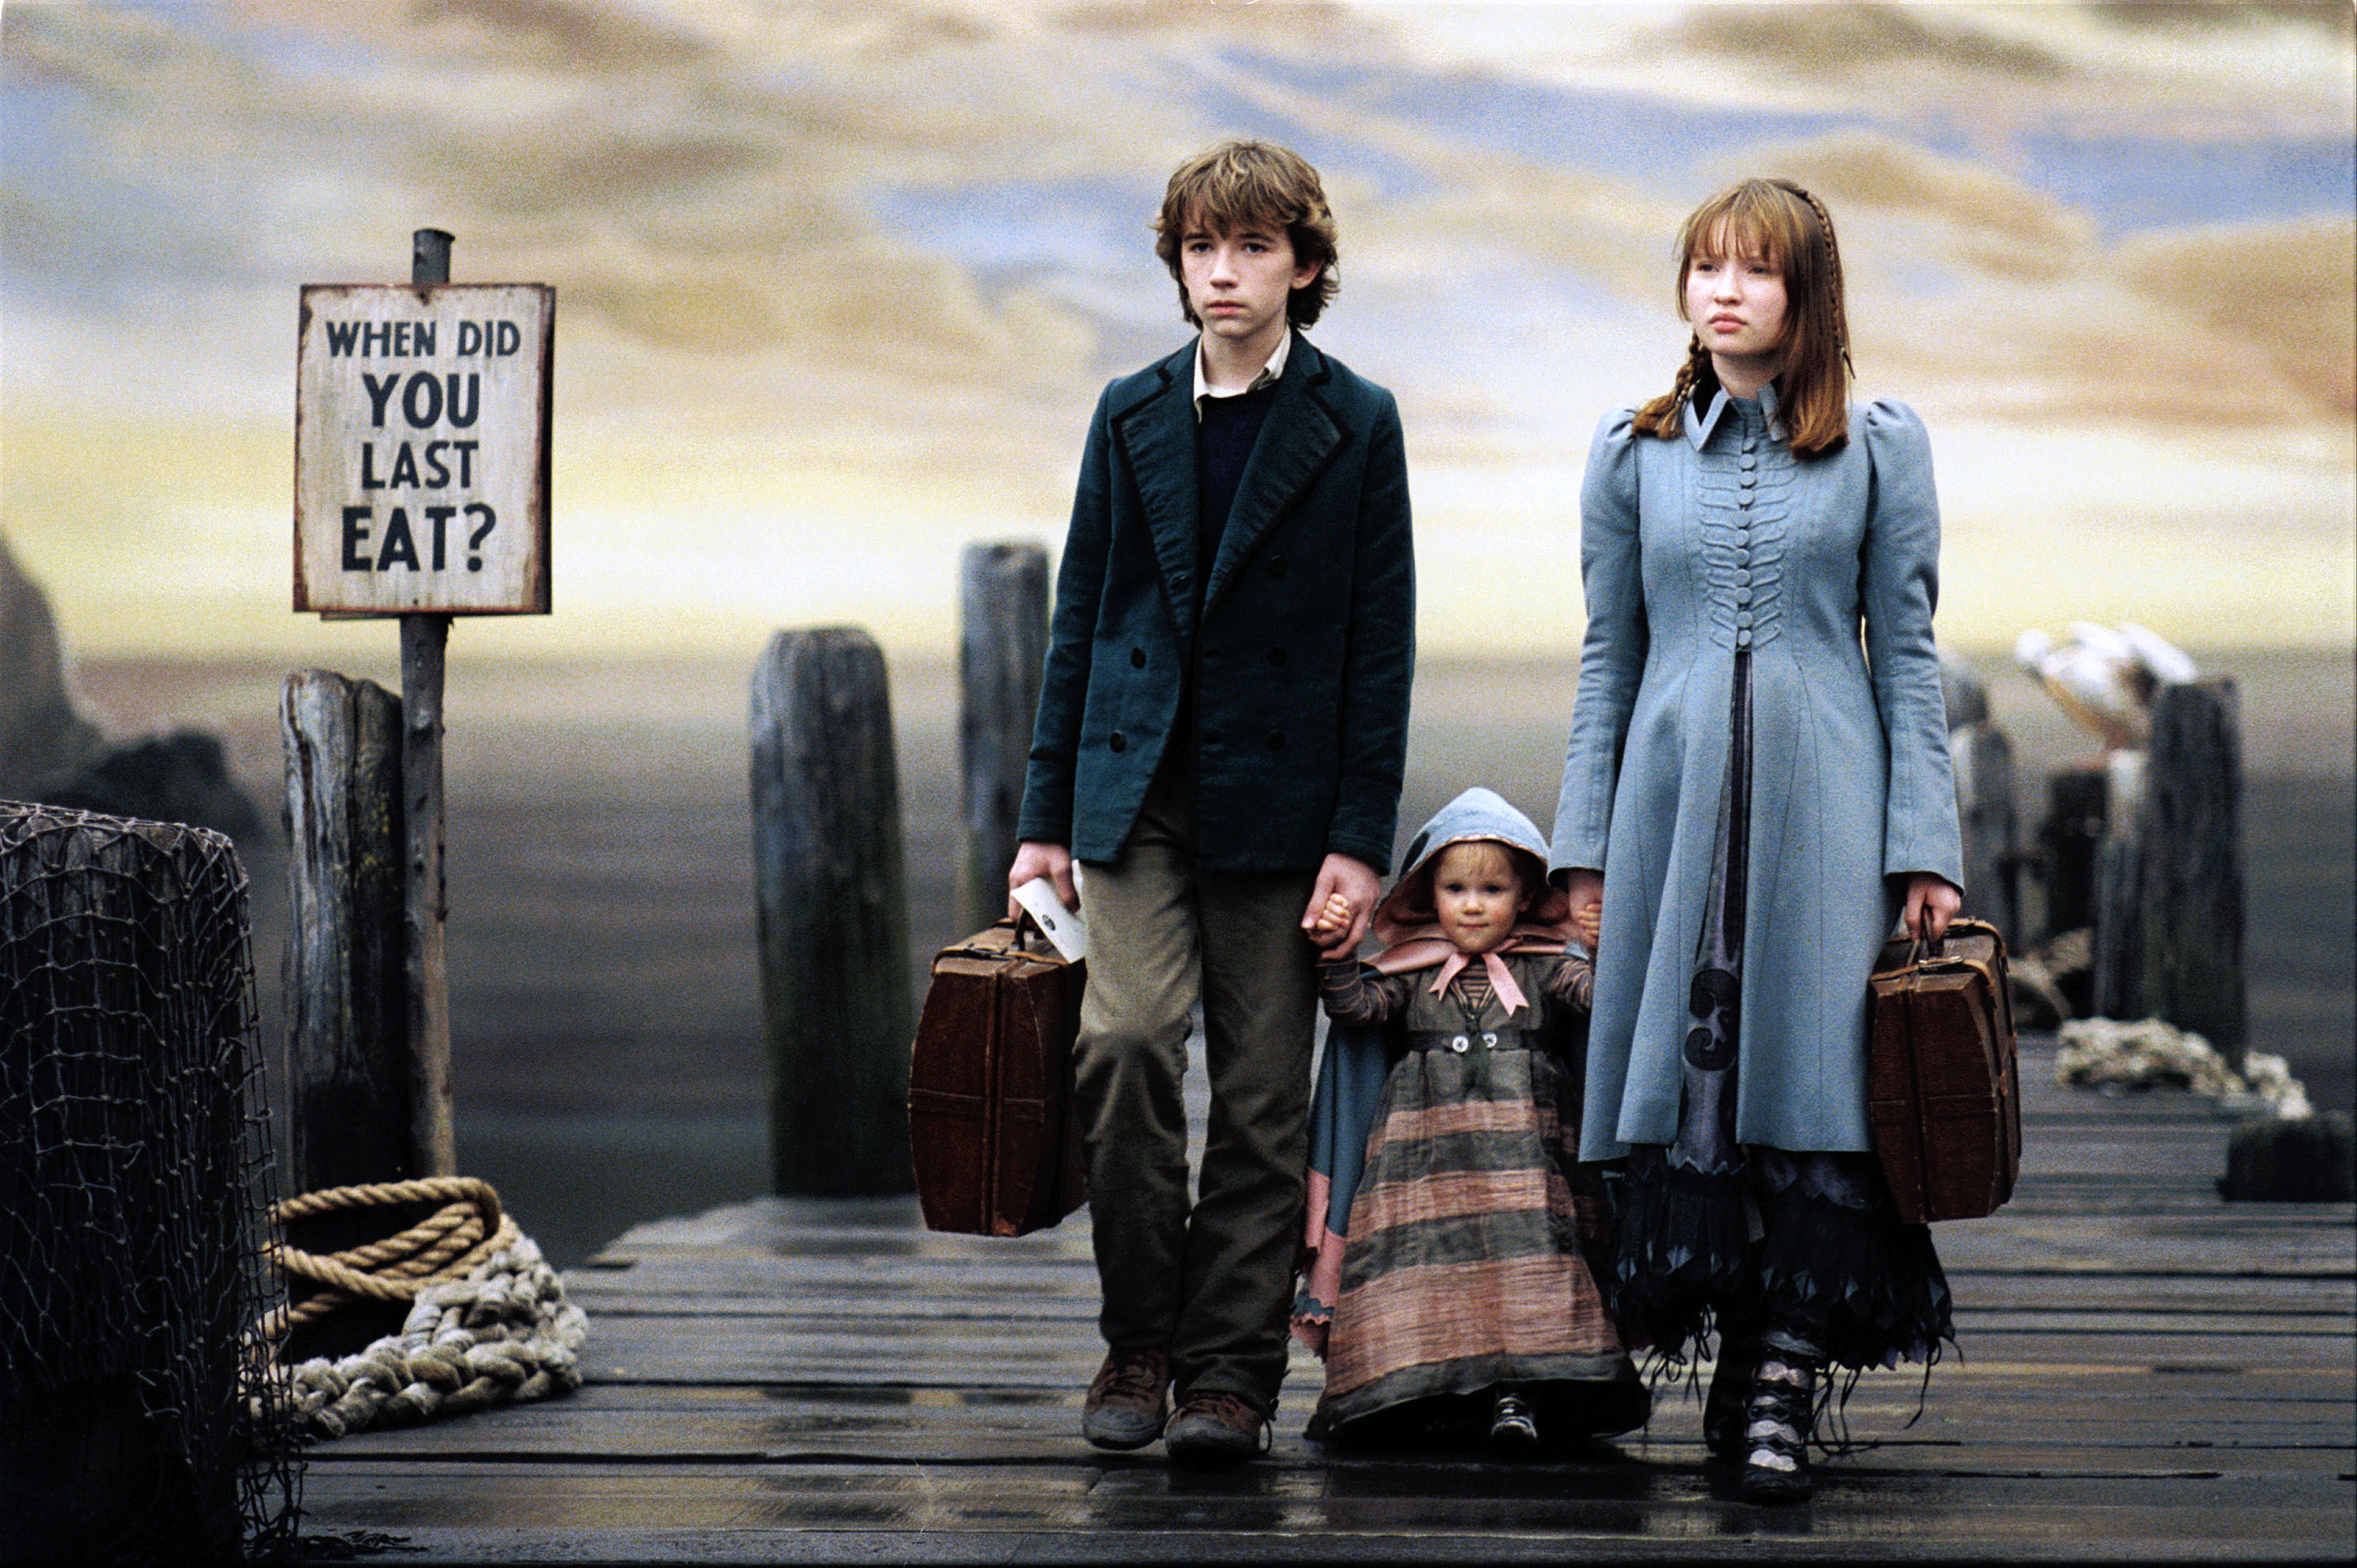 Liam Aiken, Kara/Shelby Hoffman, and Emily Browning holding hands while walking on a dock.